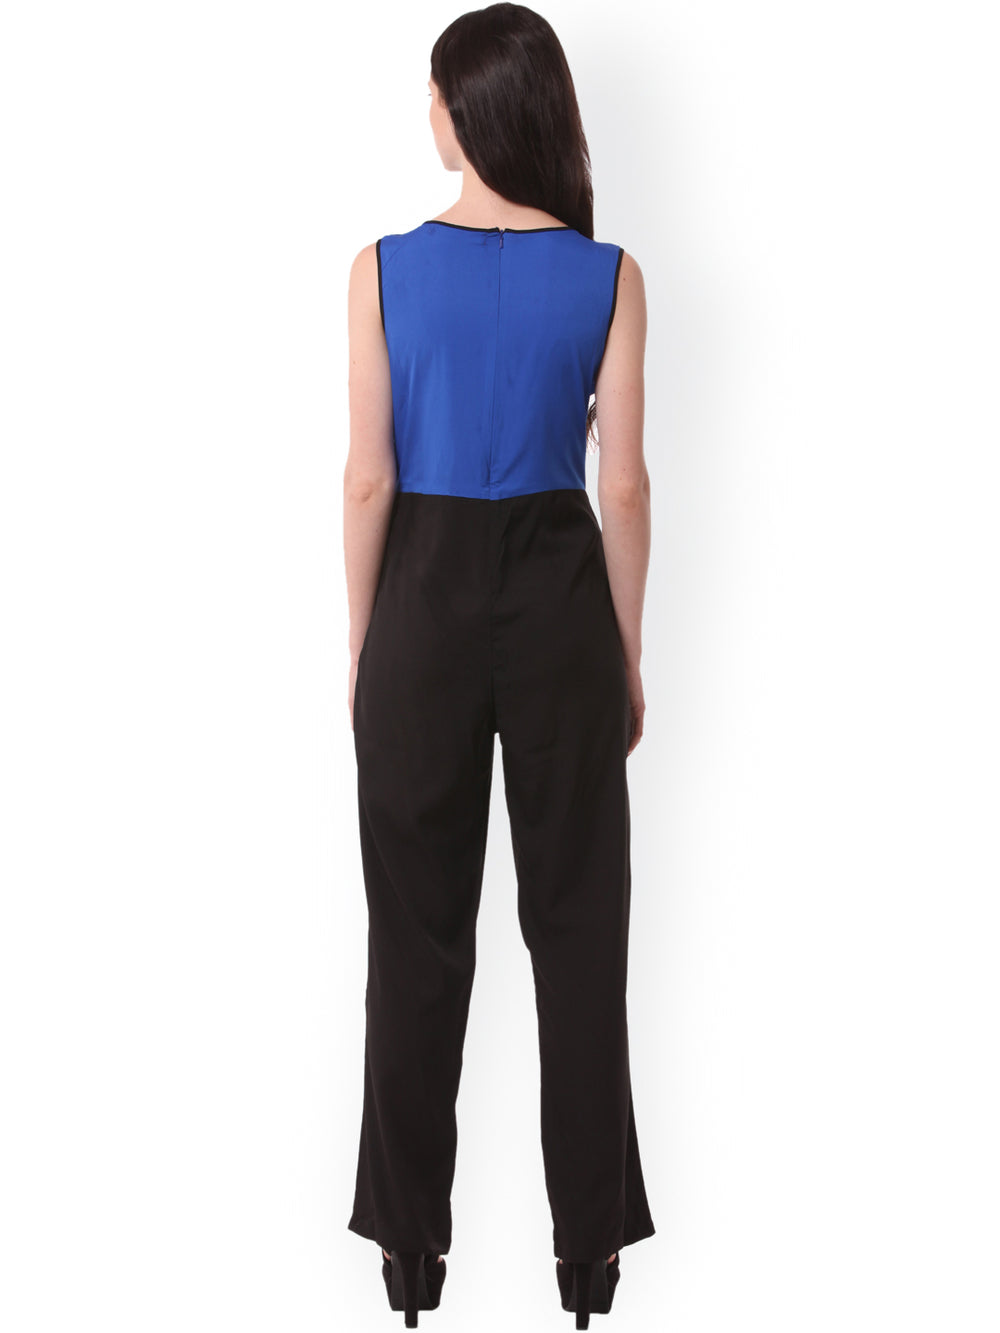 eyelet Blue & Black Jumpsuit